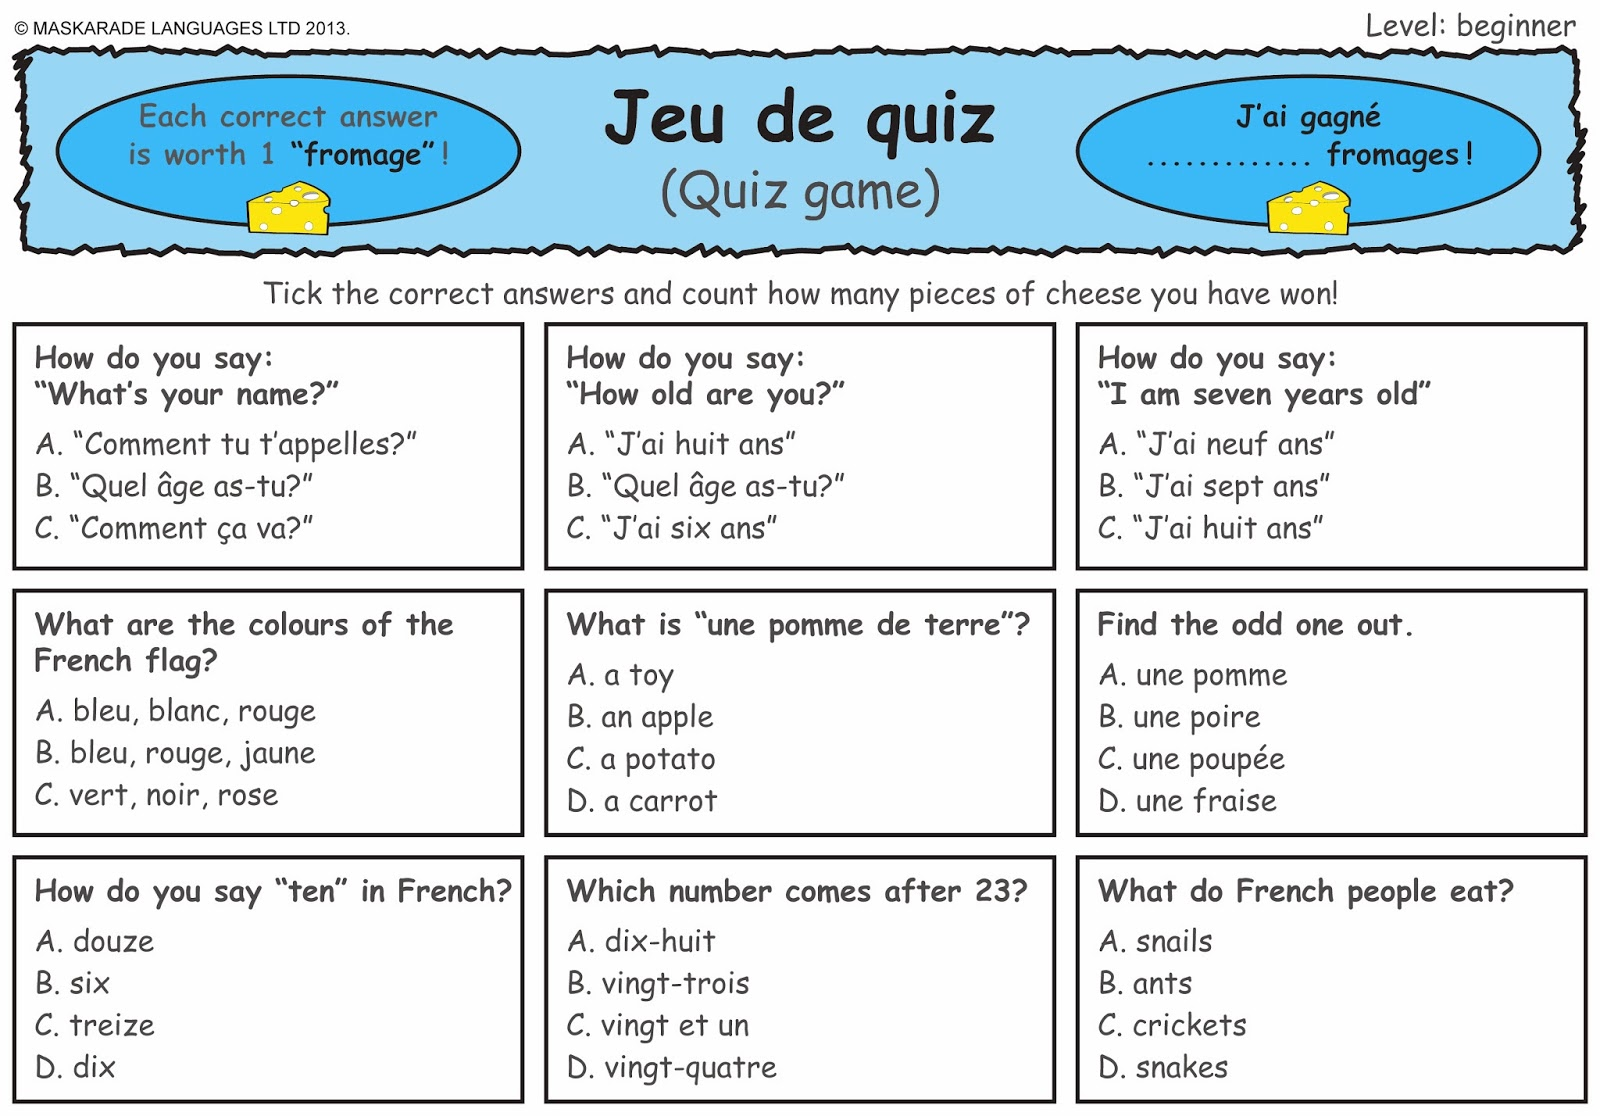 Maskarade Languages French Quiz